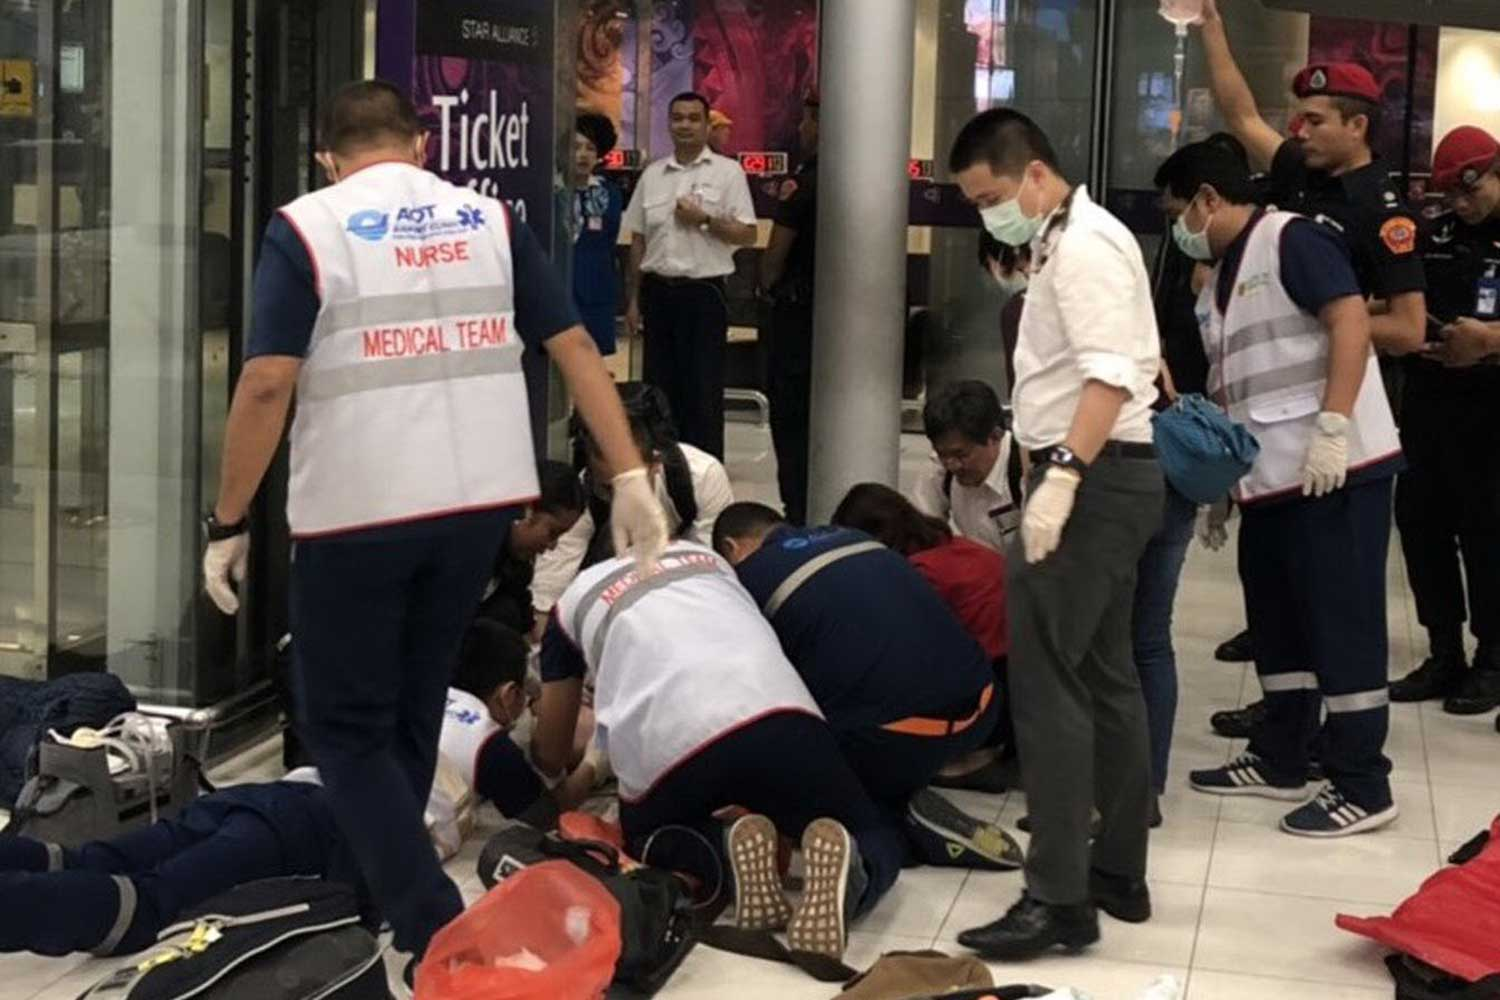 Medical staff give first aid to a Finnish man after he fell from the sixth floor in the outbound zone at the Suvarnabhumi airport passenger terminal on Friday night. He sustained broken legs and multiple fractures and was pronounced dead later at a hospital. (Photo by Sutthiwit Chayutworakan)